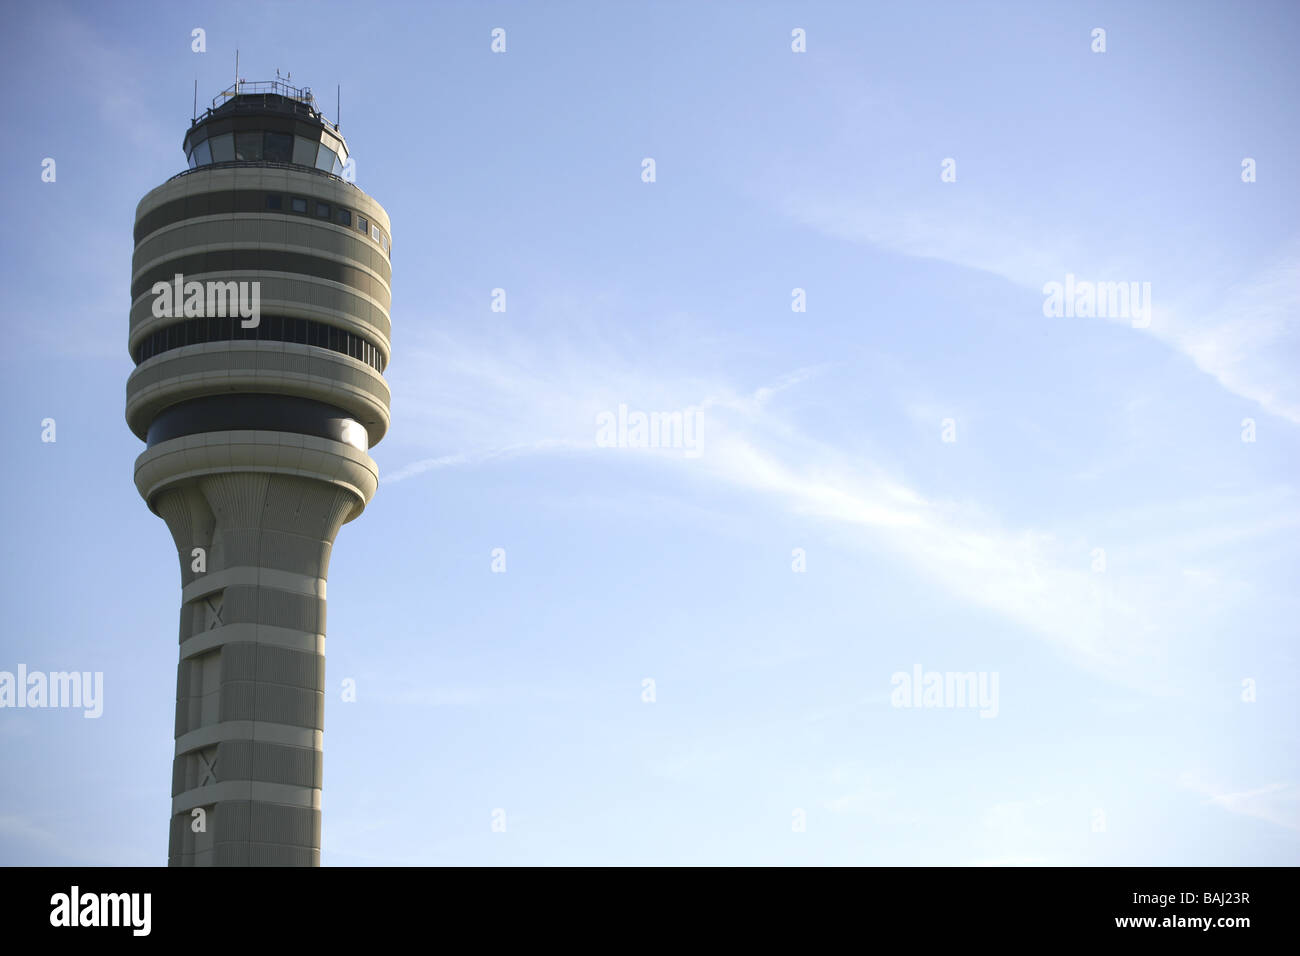 Airport control tower - Stock Image